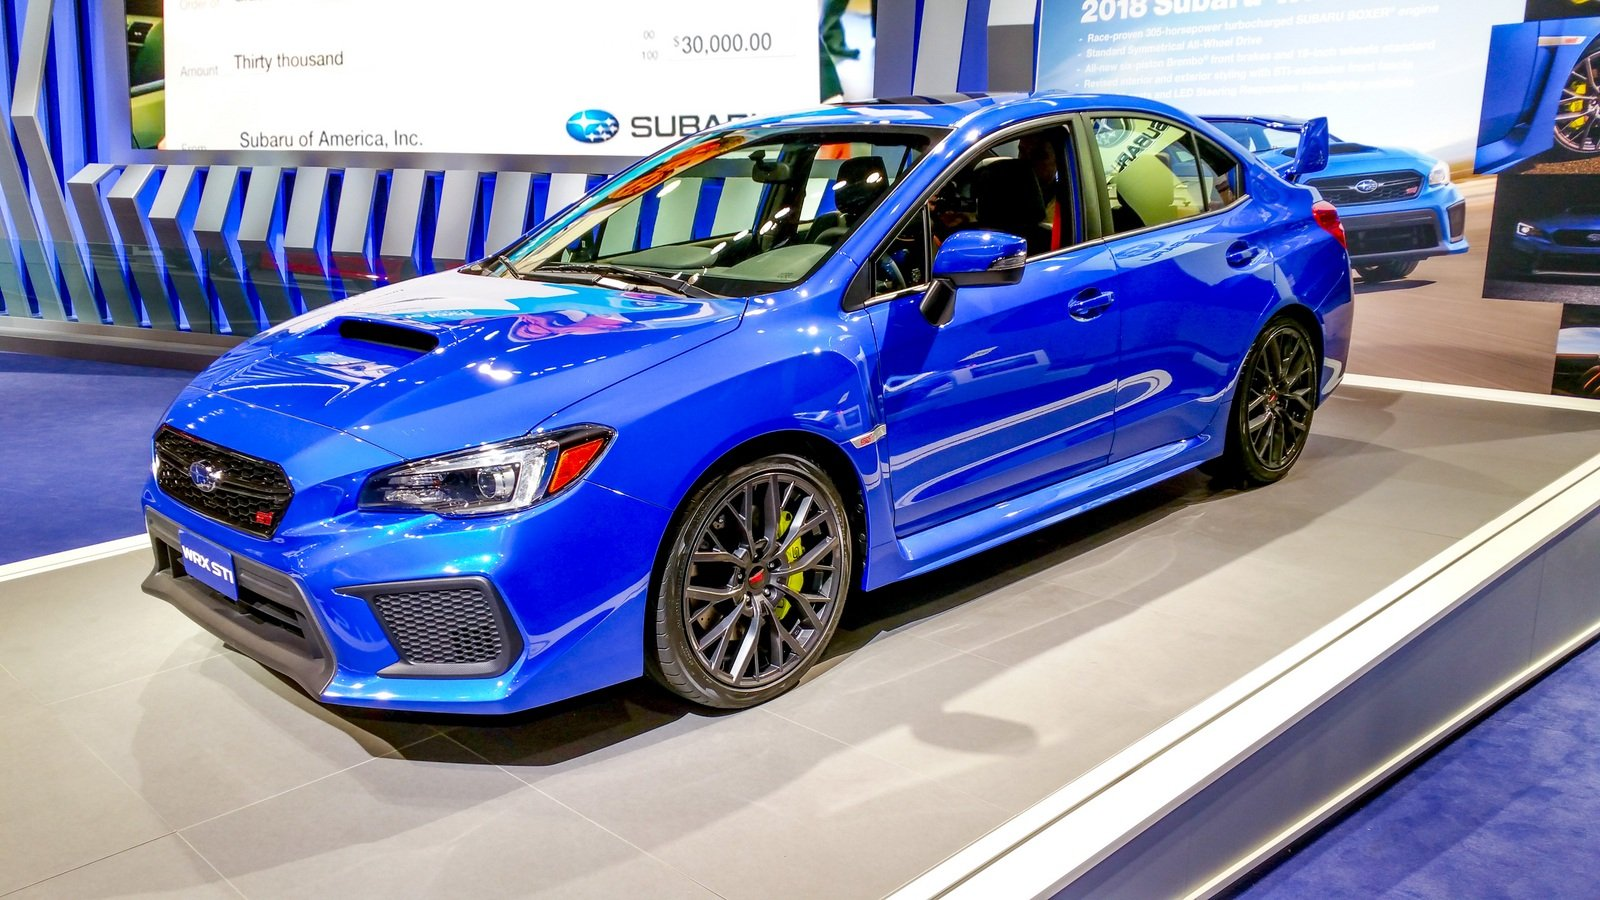 One Of The Fastest Cars Under 30K Is The Subaru WRX STI.